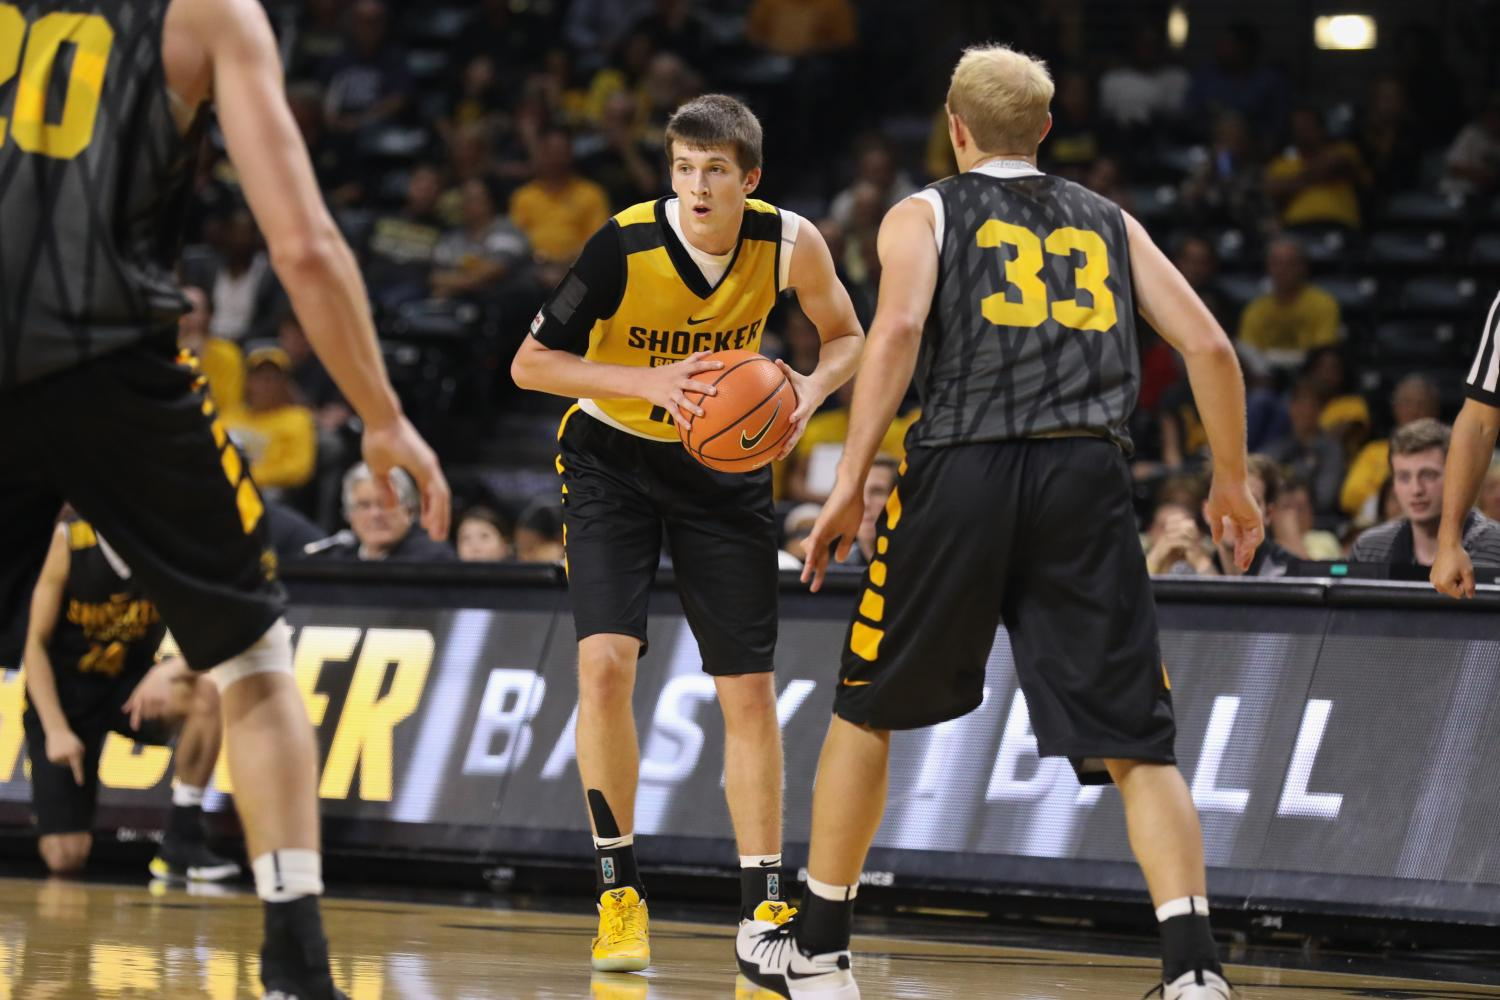 Wichita State guard Austin Reaves looks to pass during a scrimmage. (Oct. 18, 2017)